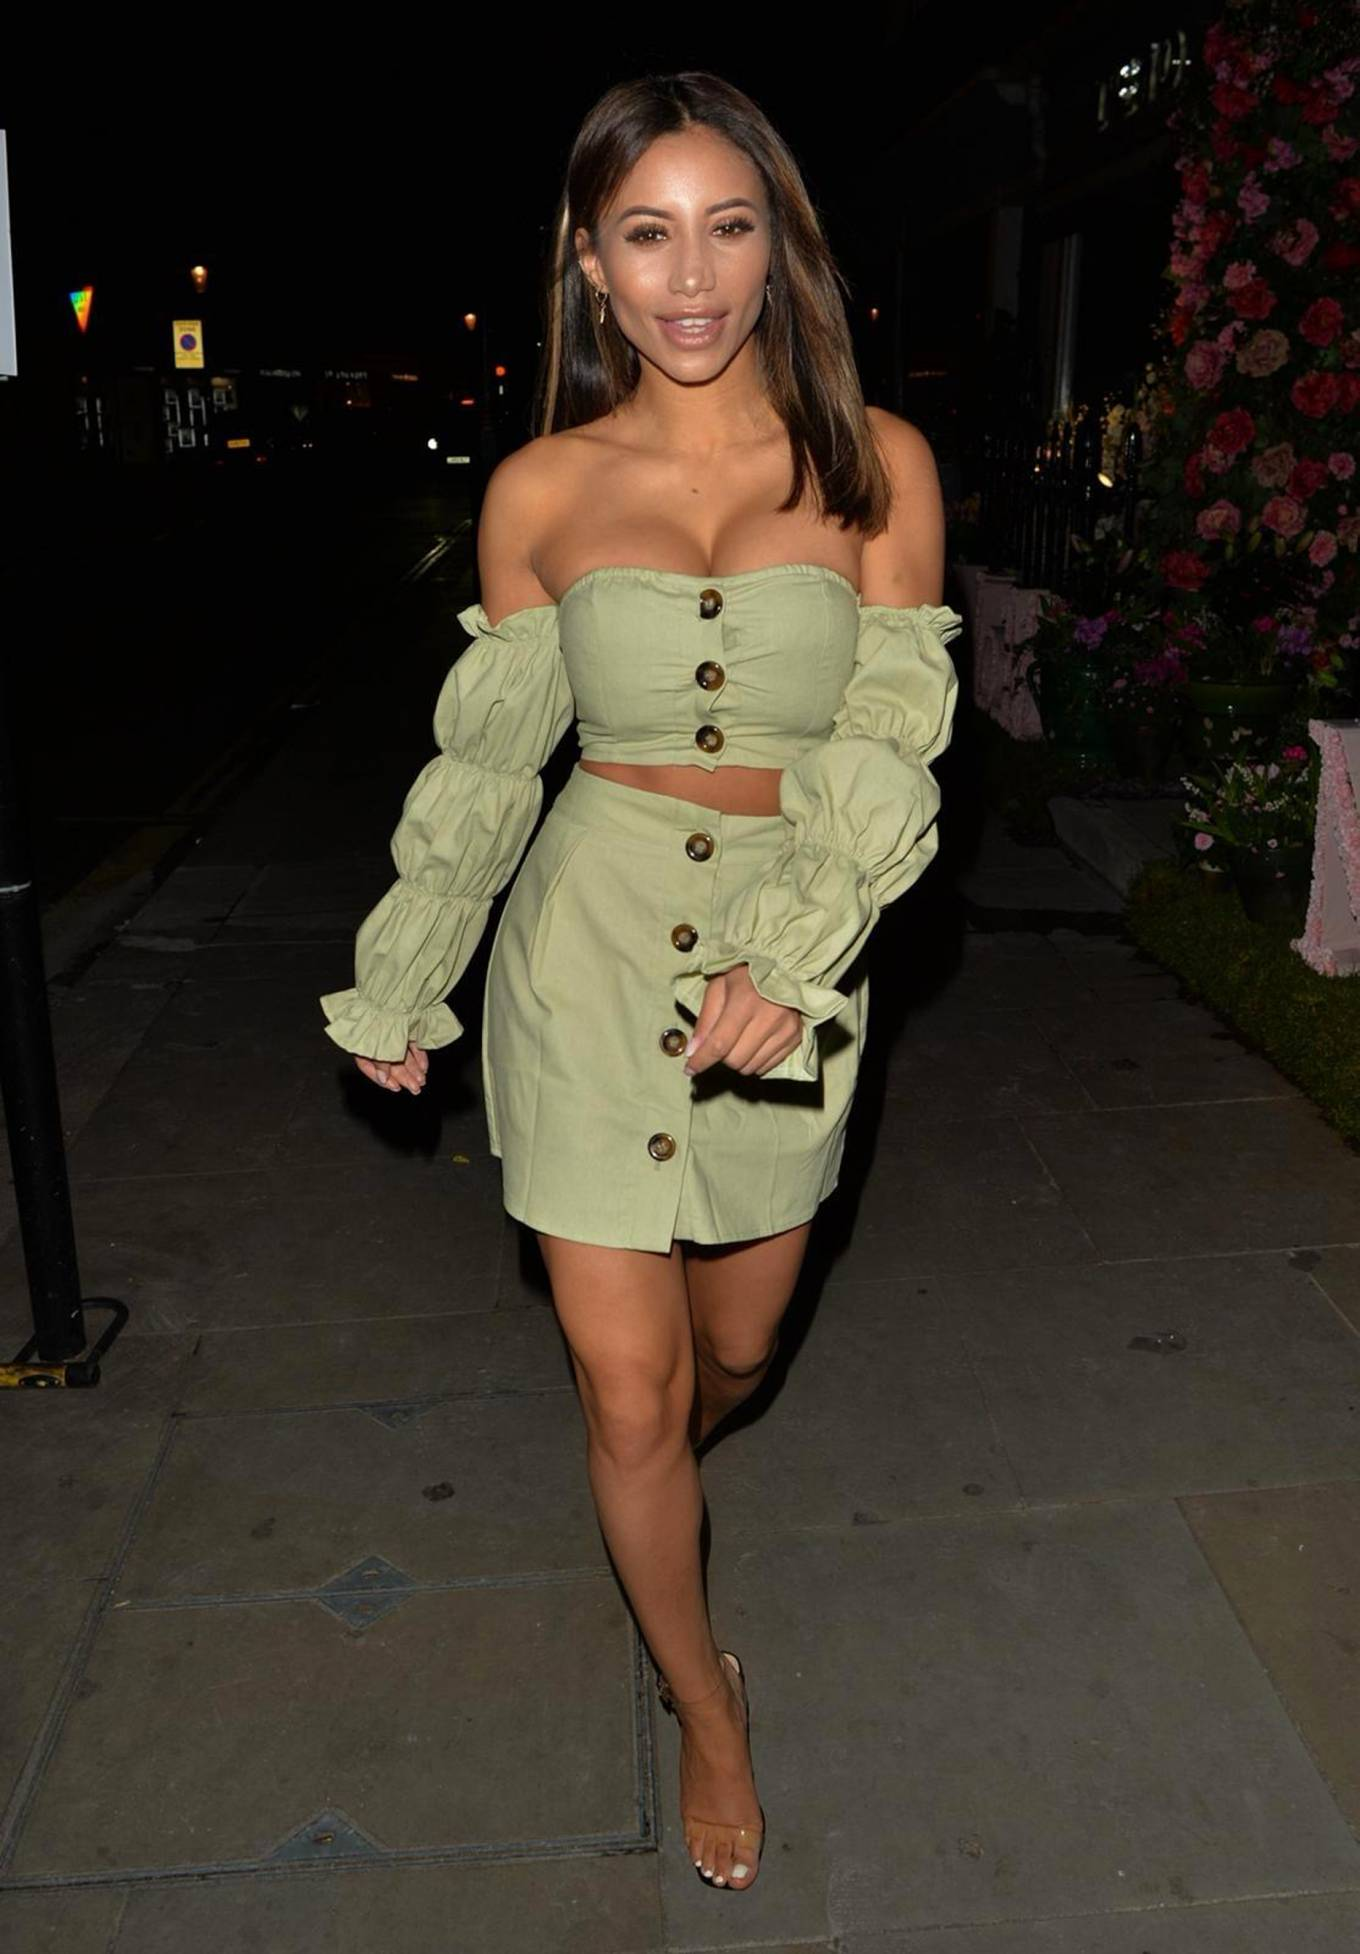 Kayleigh Morris 2020 : Kayleigh Morris – Looking chic while night out in London-09